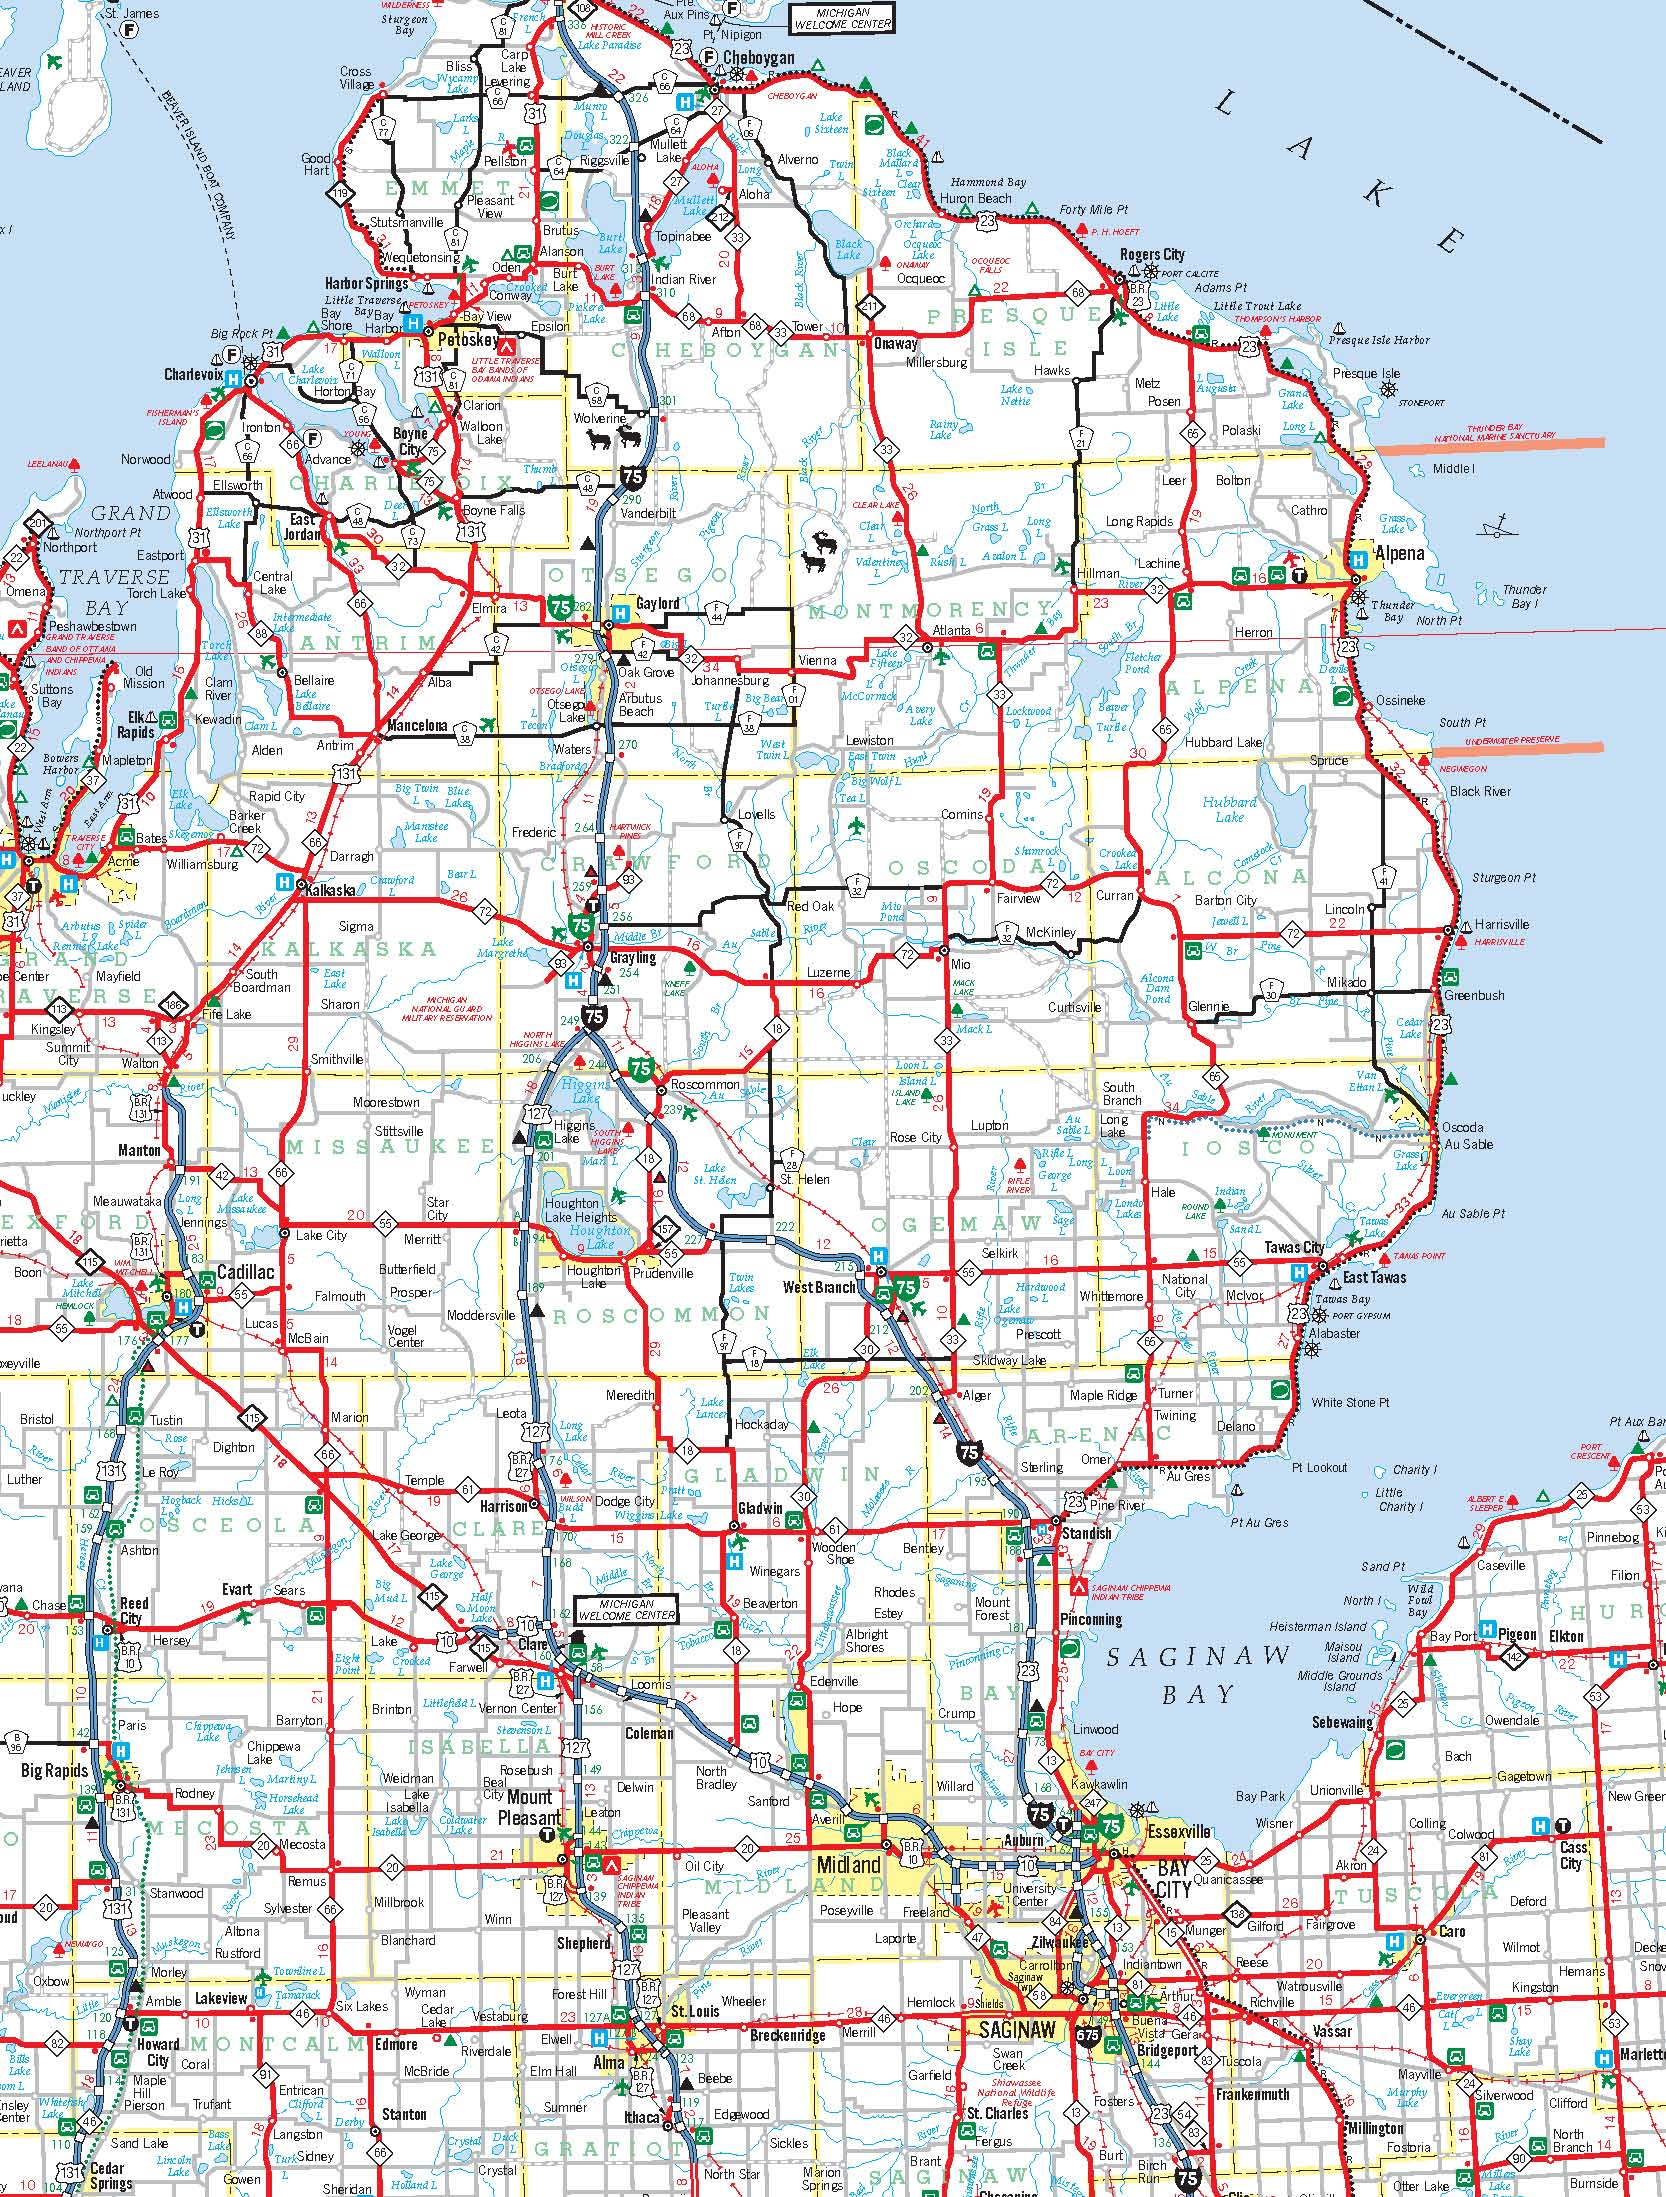 Michigan County Road Maps Michigan Map - Michigan county map